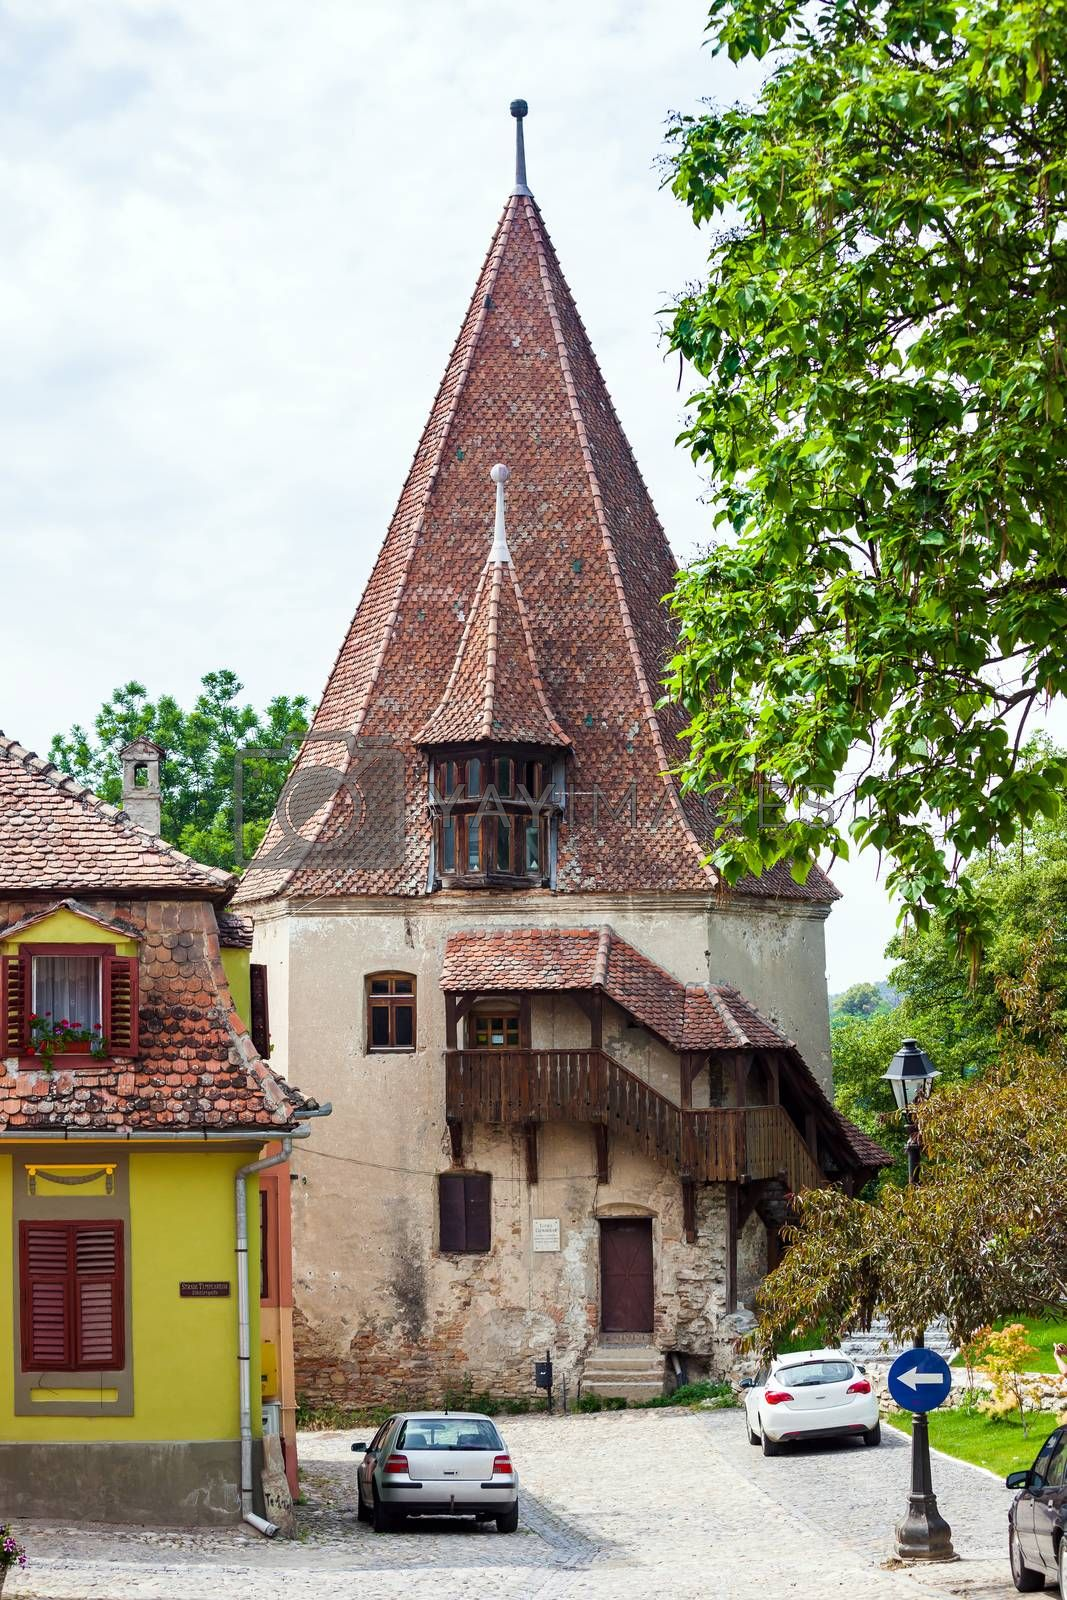 Sighisoara, Romania - June 23, 2013: Shoemakers tower (Turnul Cizmarilor) part of  Sighisoara fortress in Transylvania, Romania